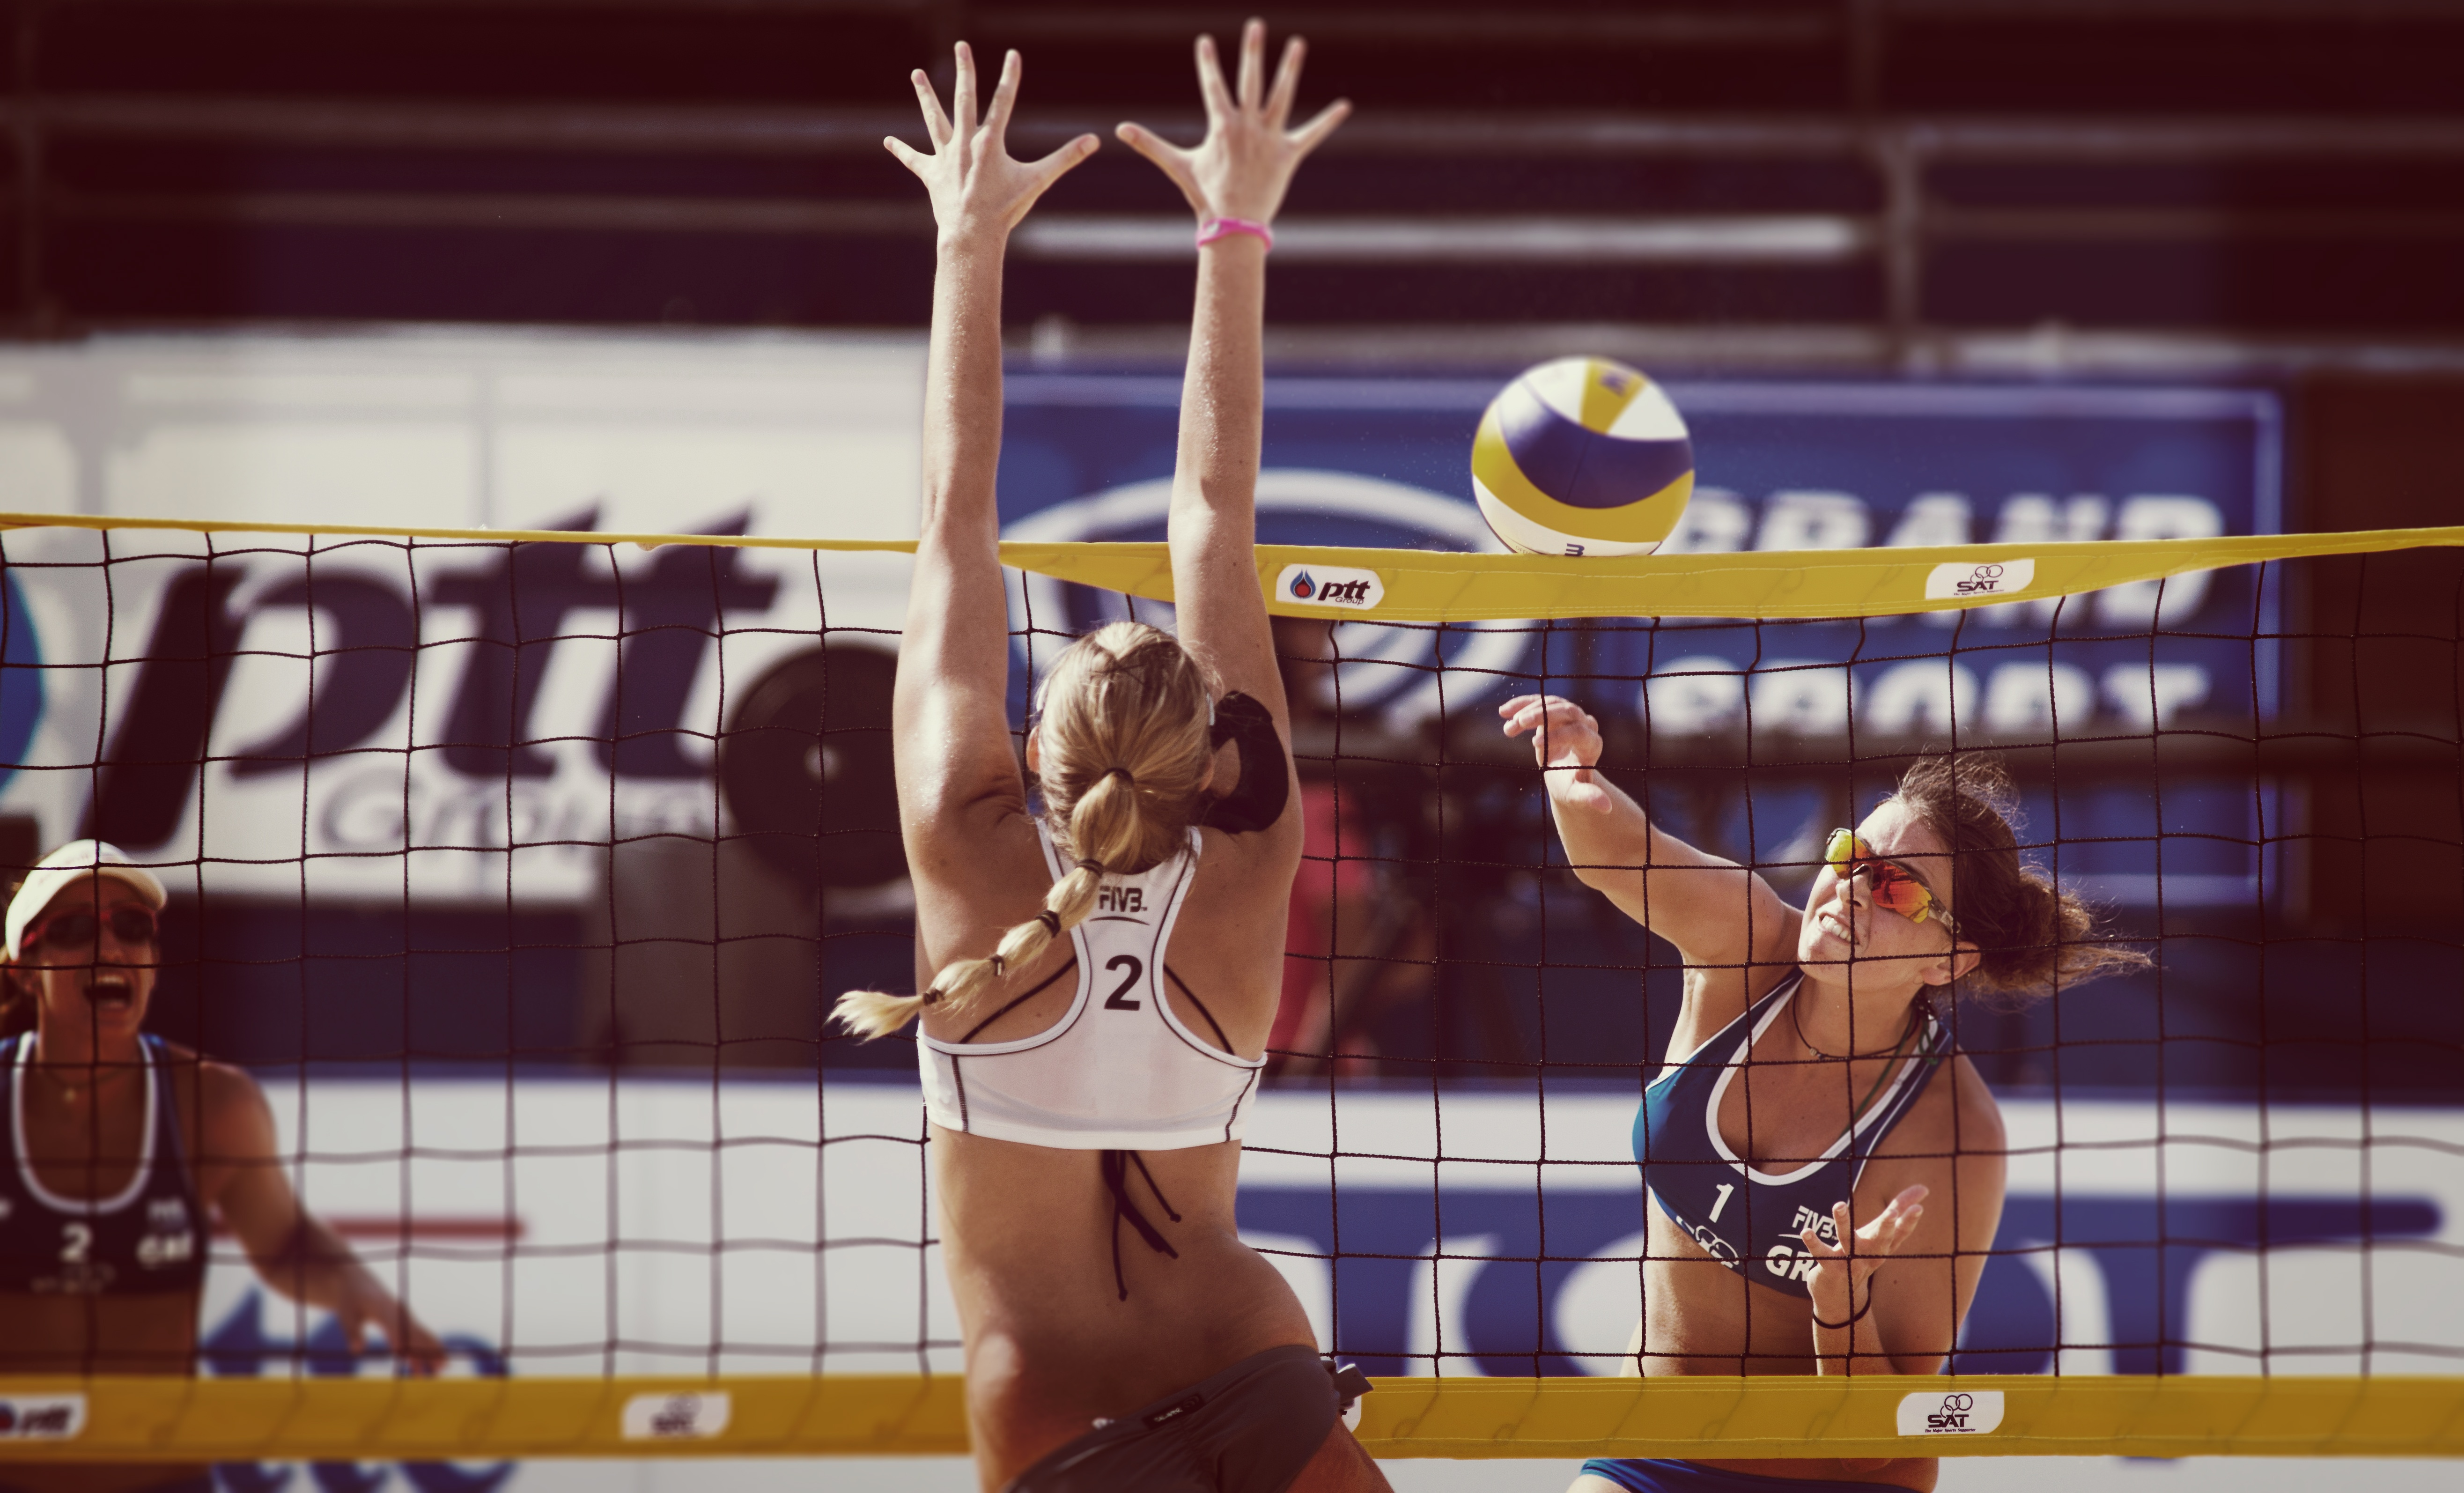 Beach Volleyball: 3 R's to Keep Up With & Exceed Your Goals